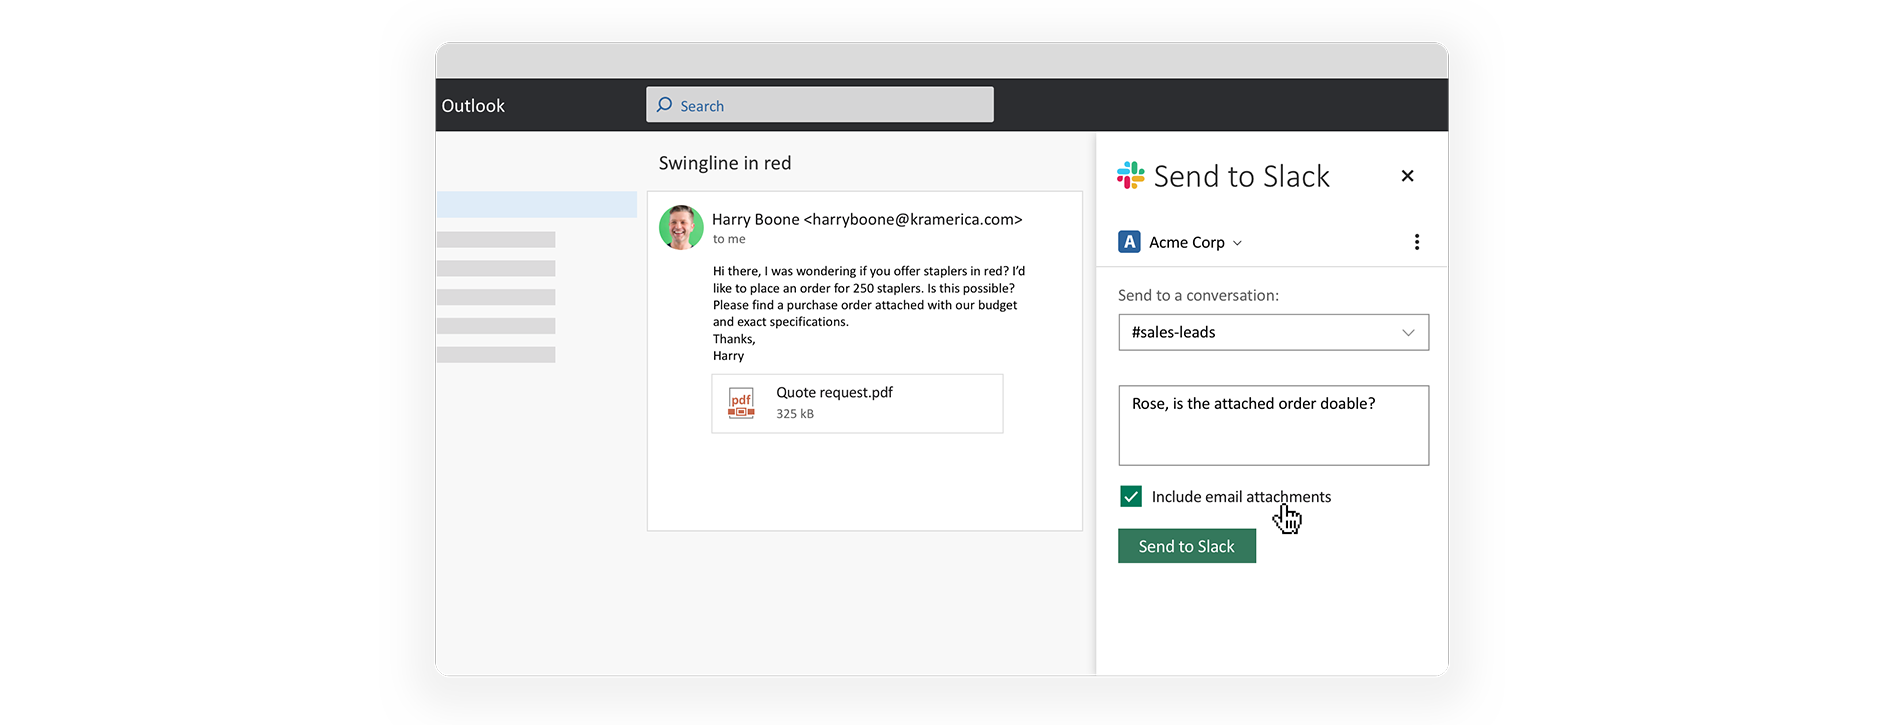 An example of how Slack integrates with Microsoft Outlook so you can keep better tabs on your communication.